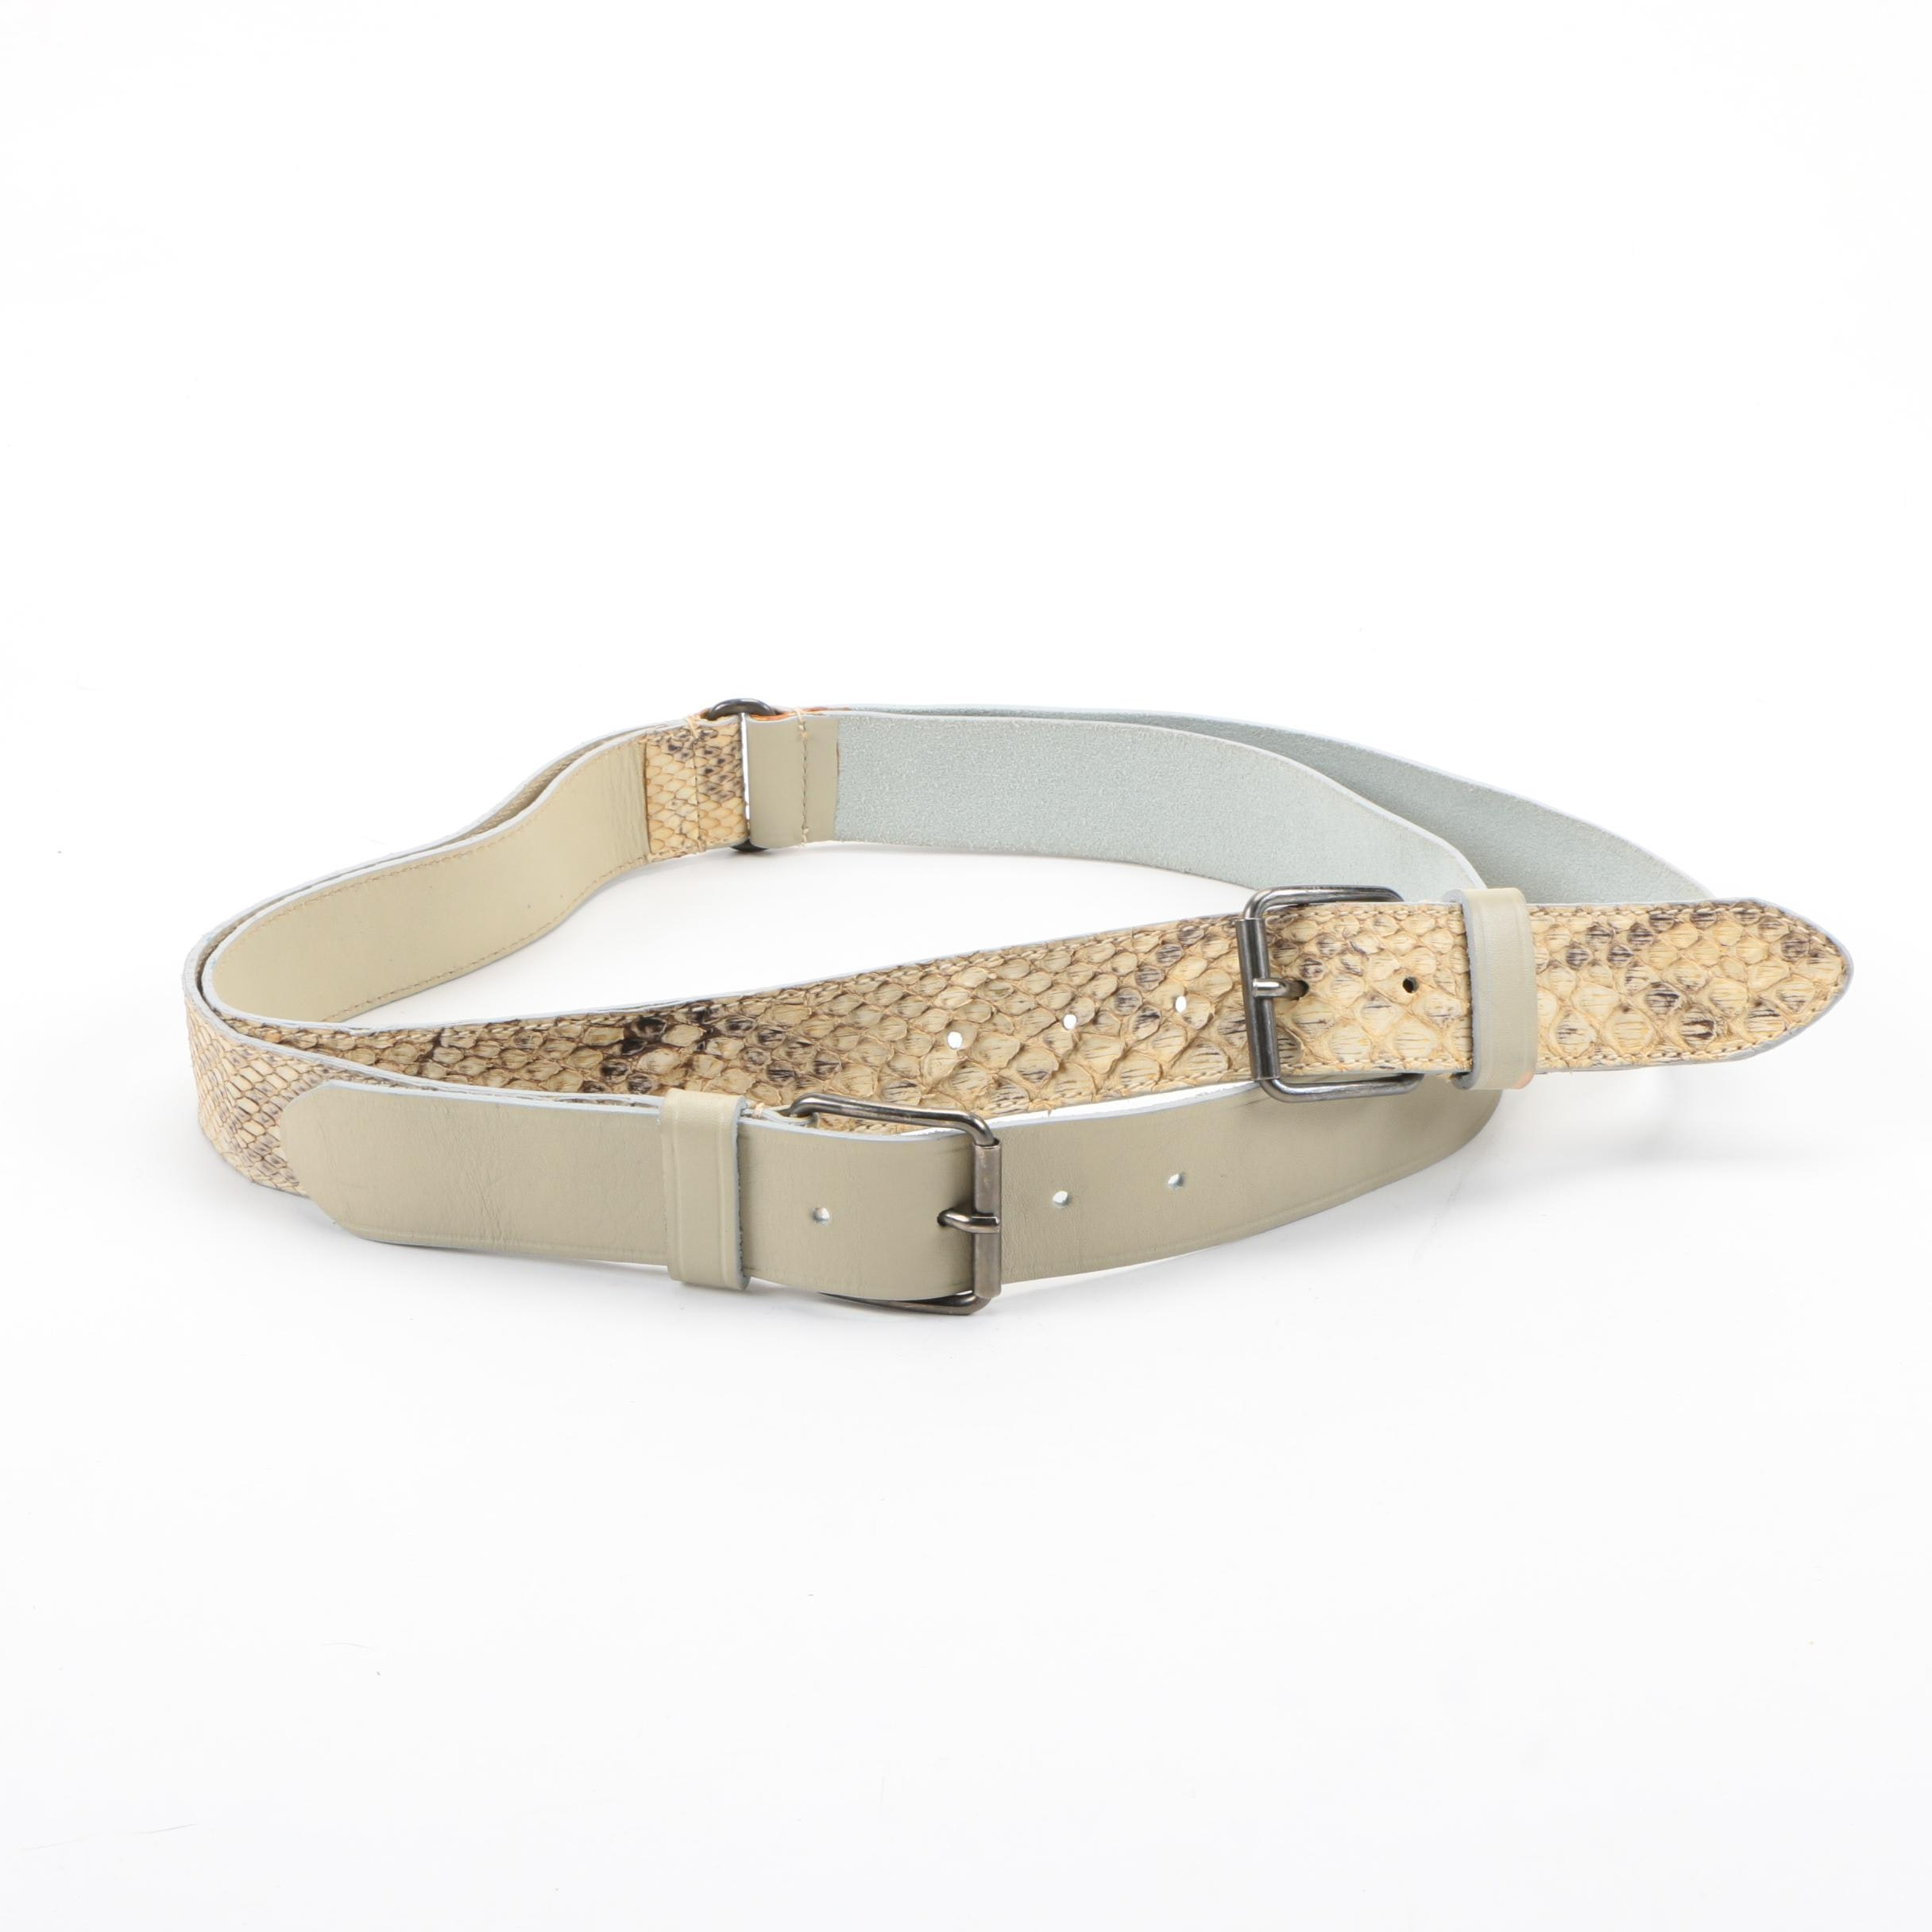 Prada Double Snakeskin and Leather Belt